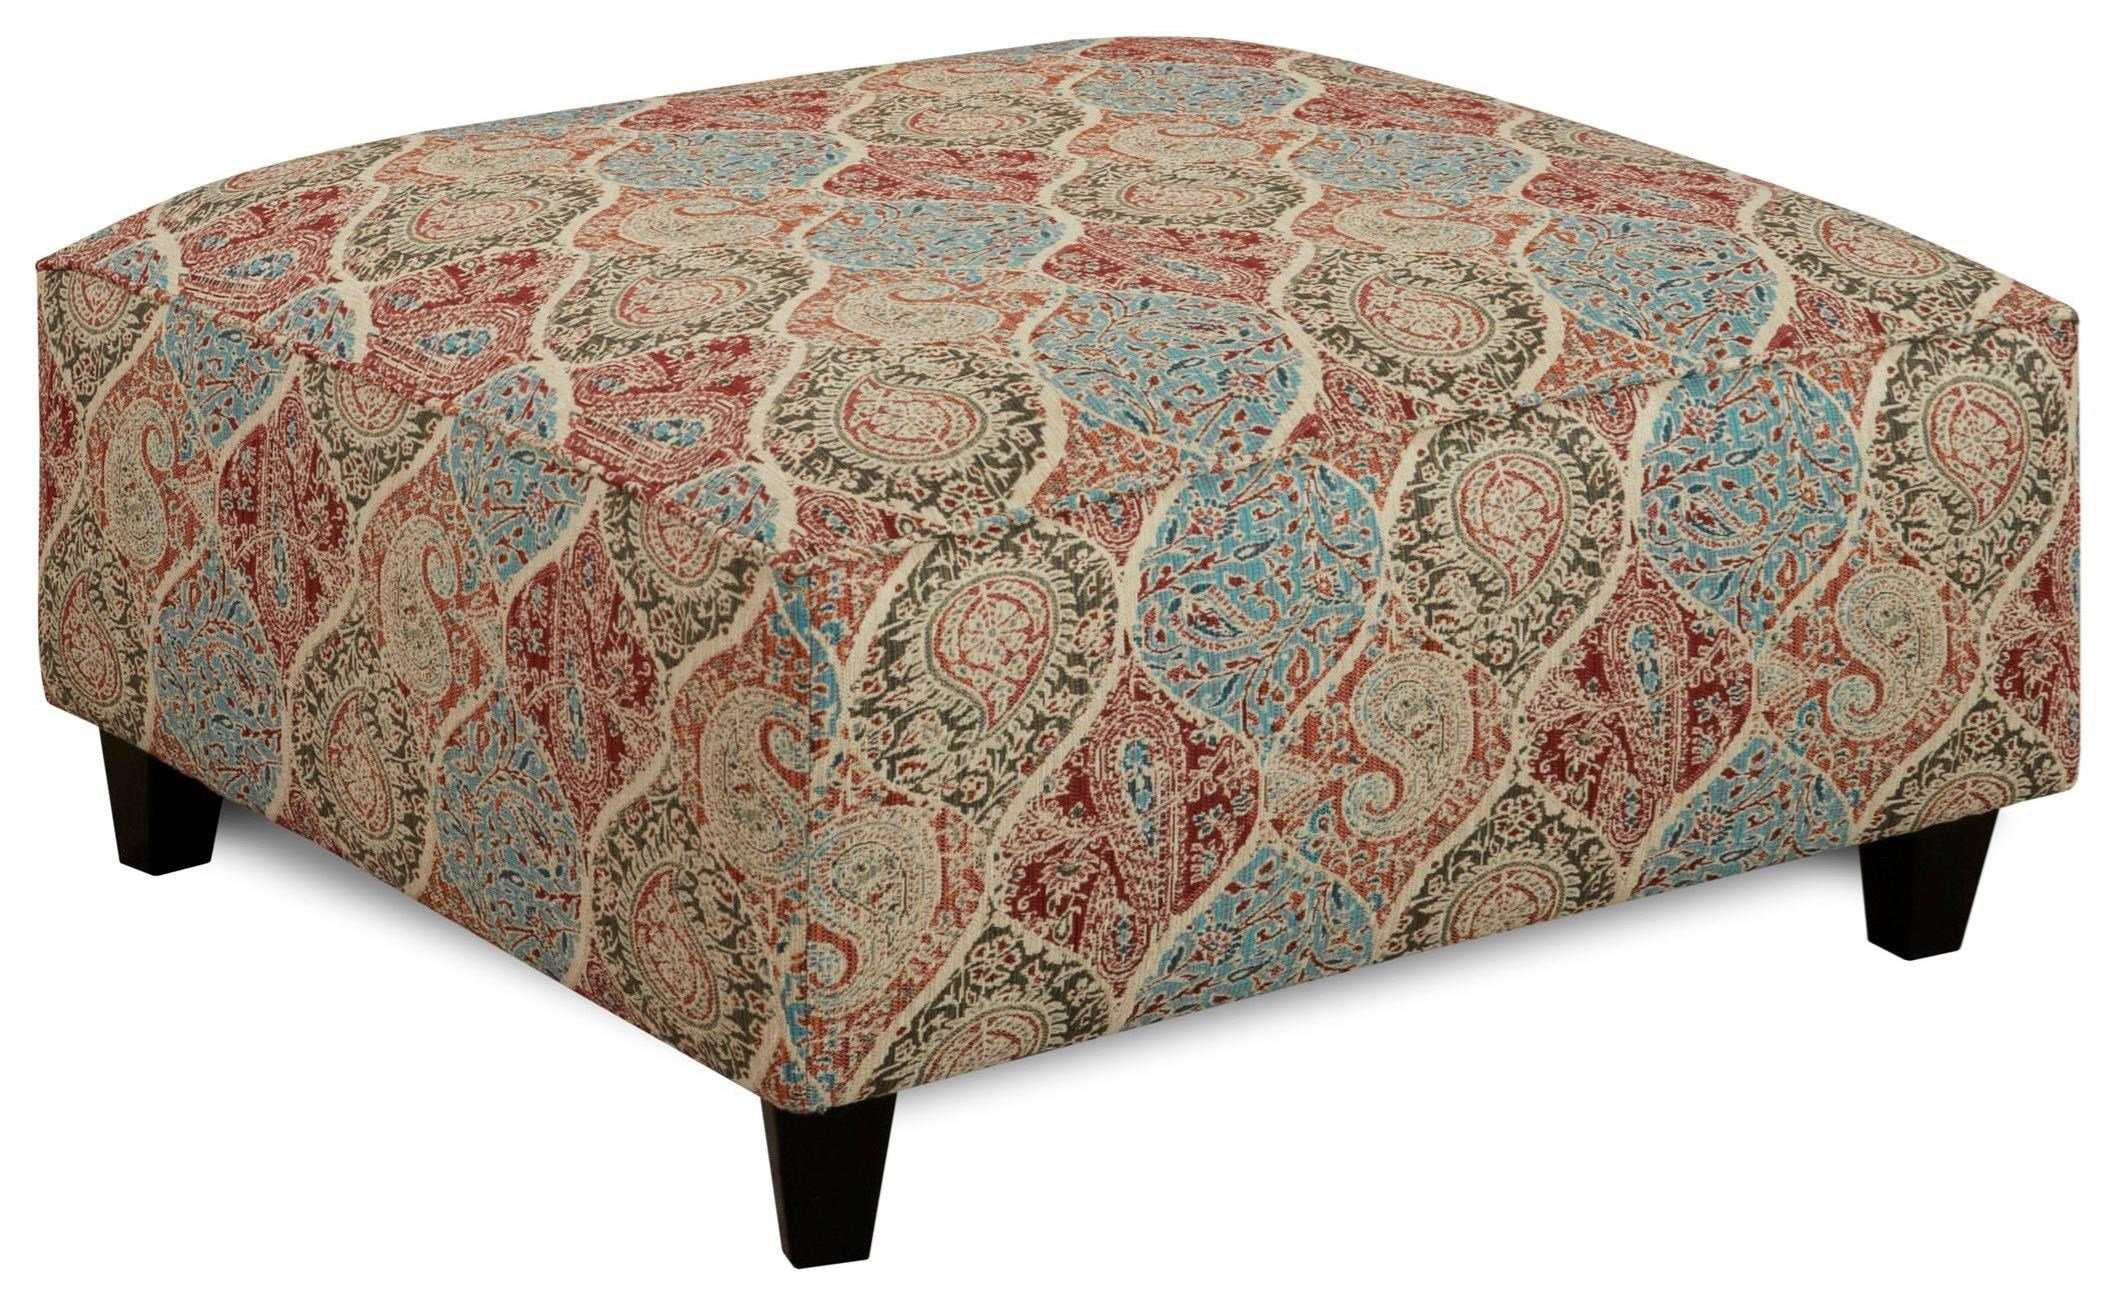 Fusion Furniture 109 Square Ottoman - Item Number: 109Biltmore Heather